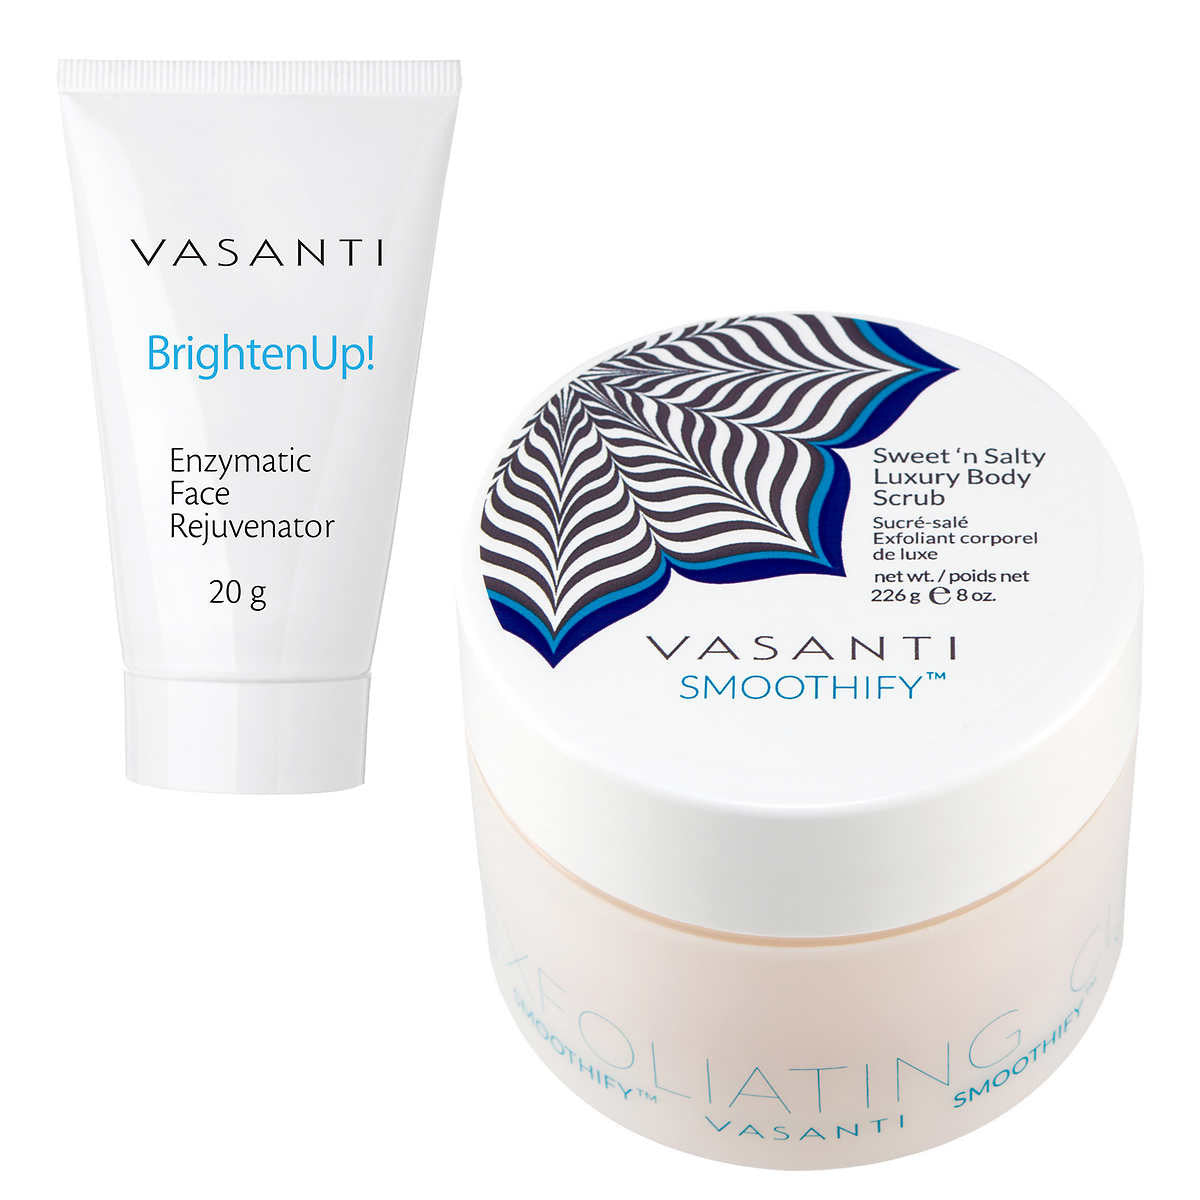 Vasanti Smoothify Sweet 'n Salty Luxury Body Scrub 220 g and BrightenUp! Exfoliating Cleanser 20 g